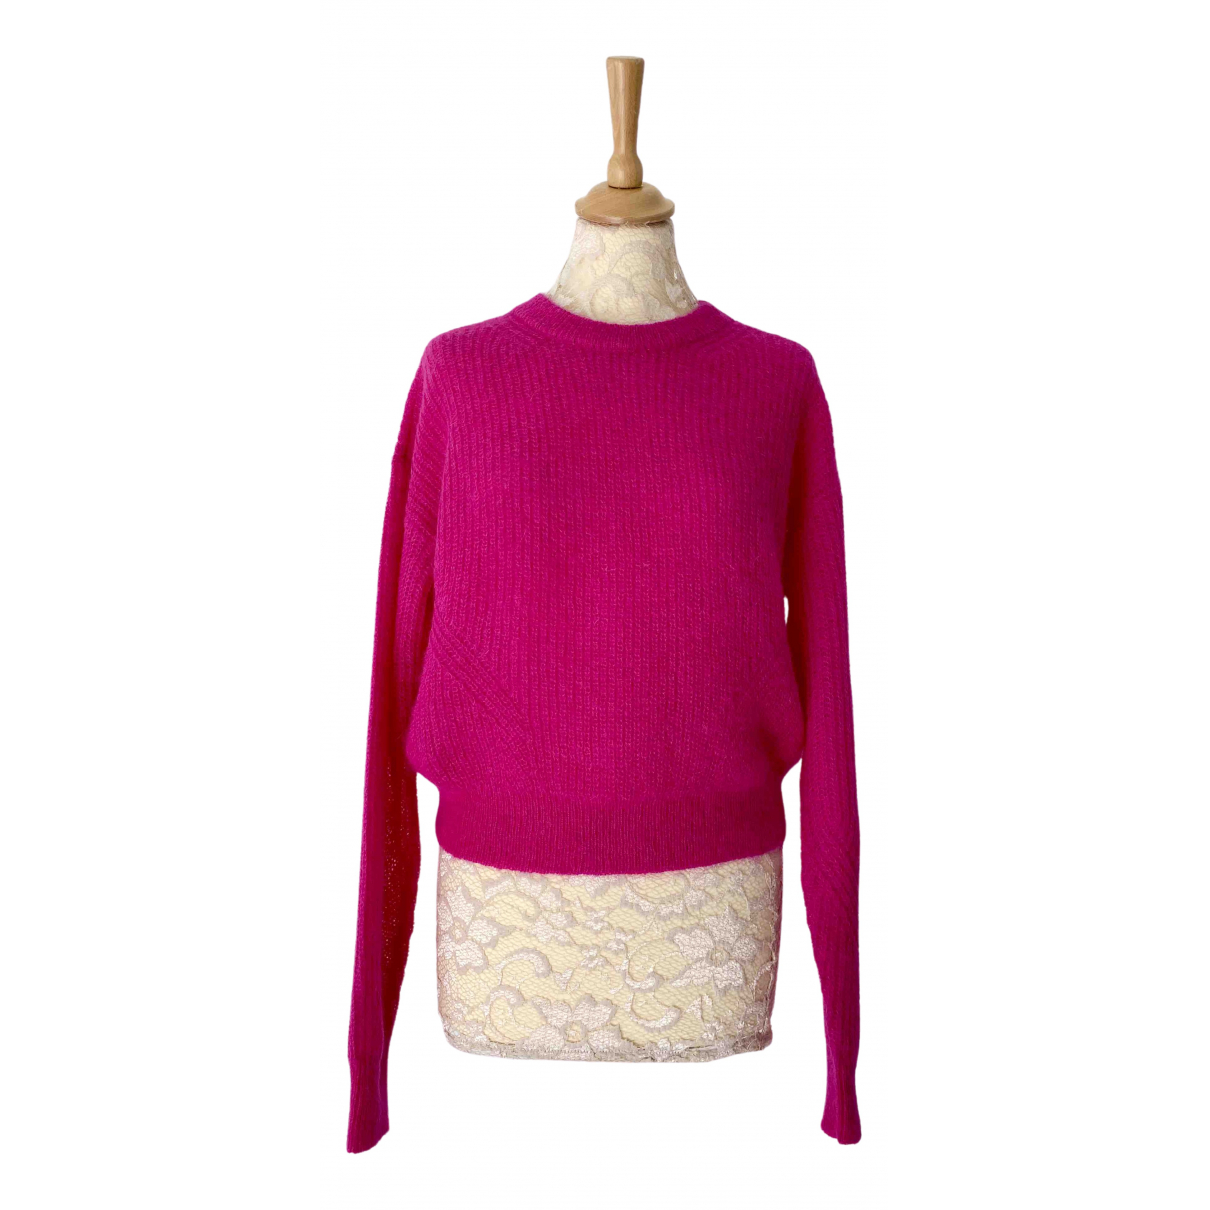 Veronica Beard \N Pullover in  Rosa Wolle